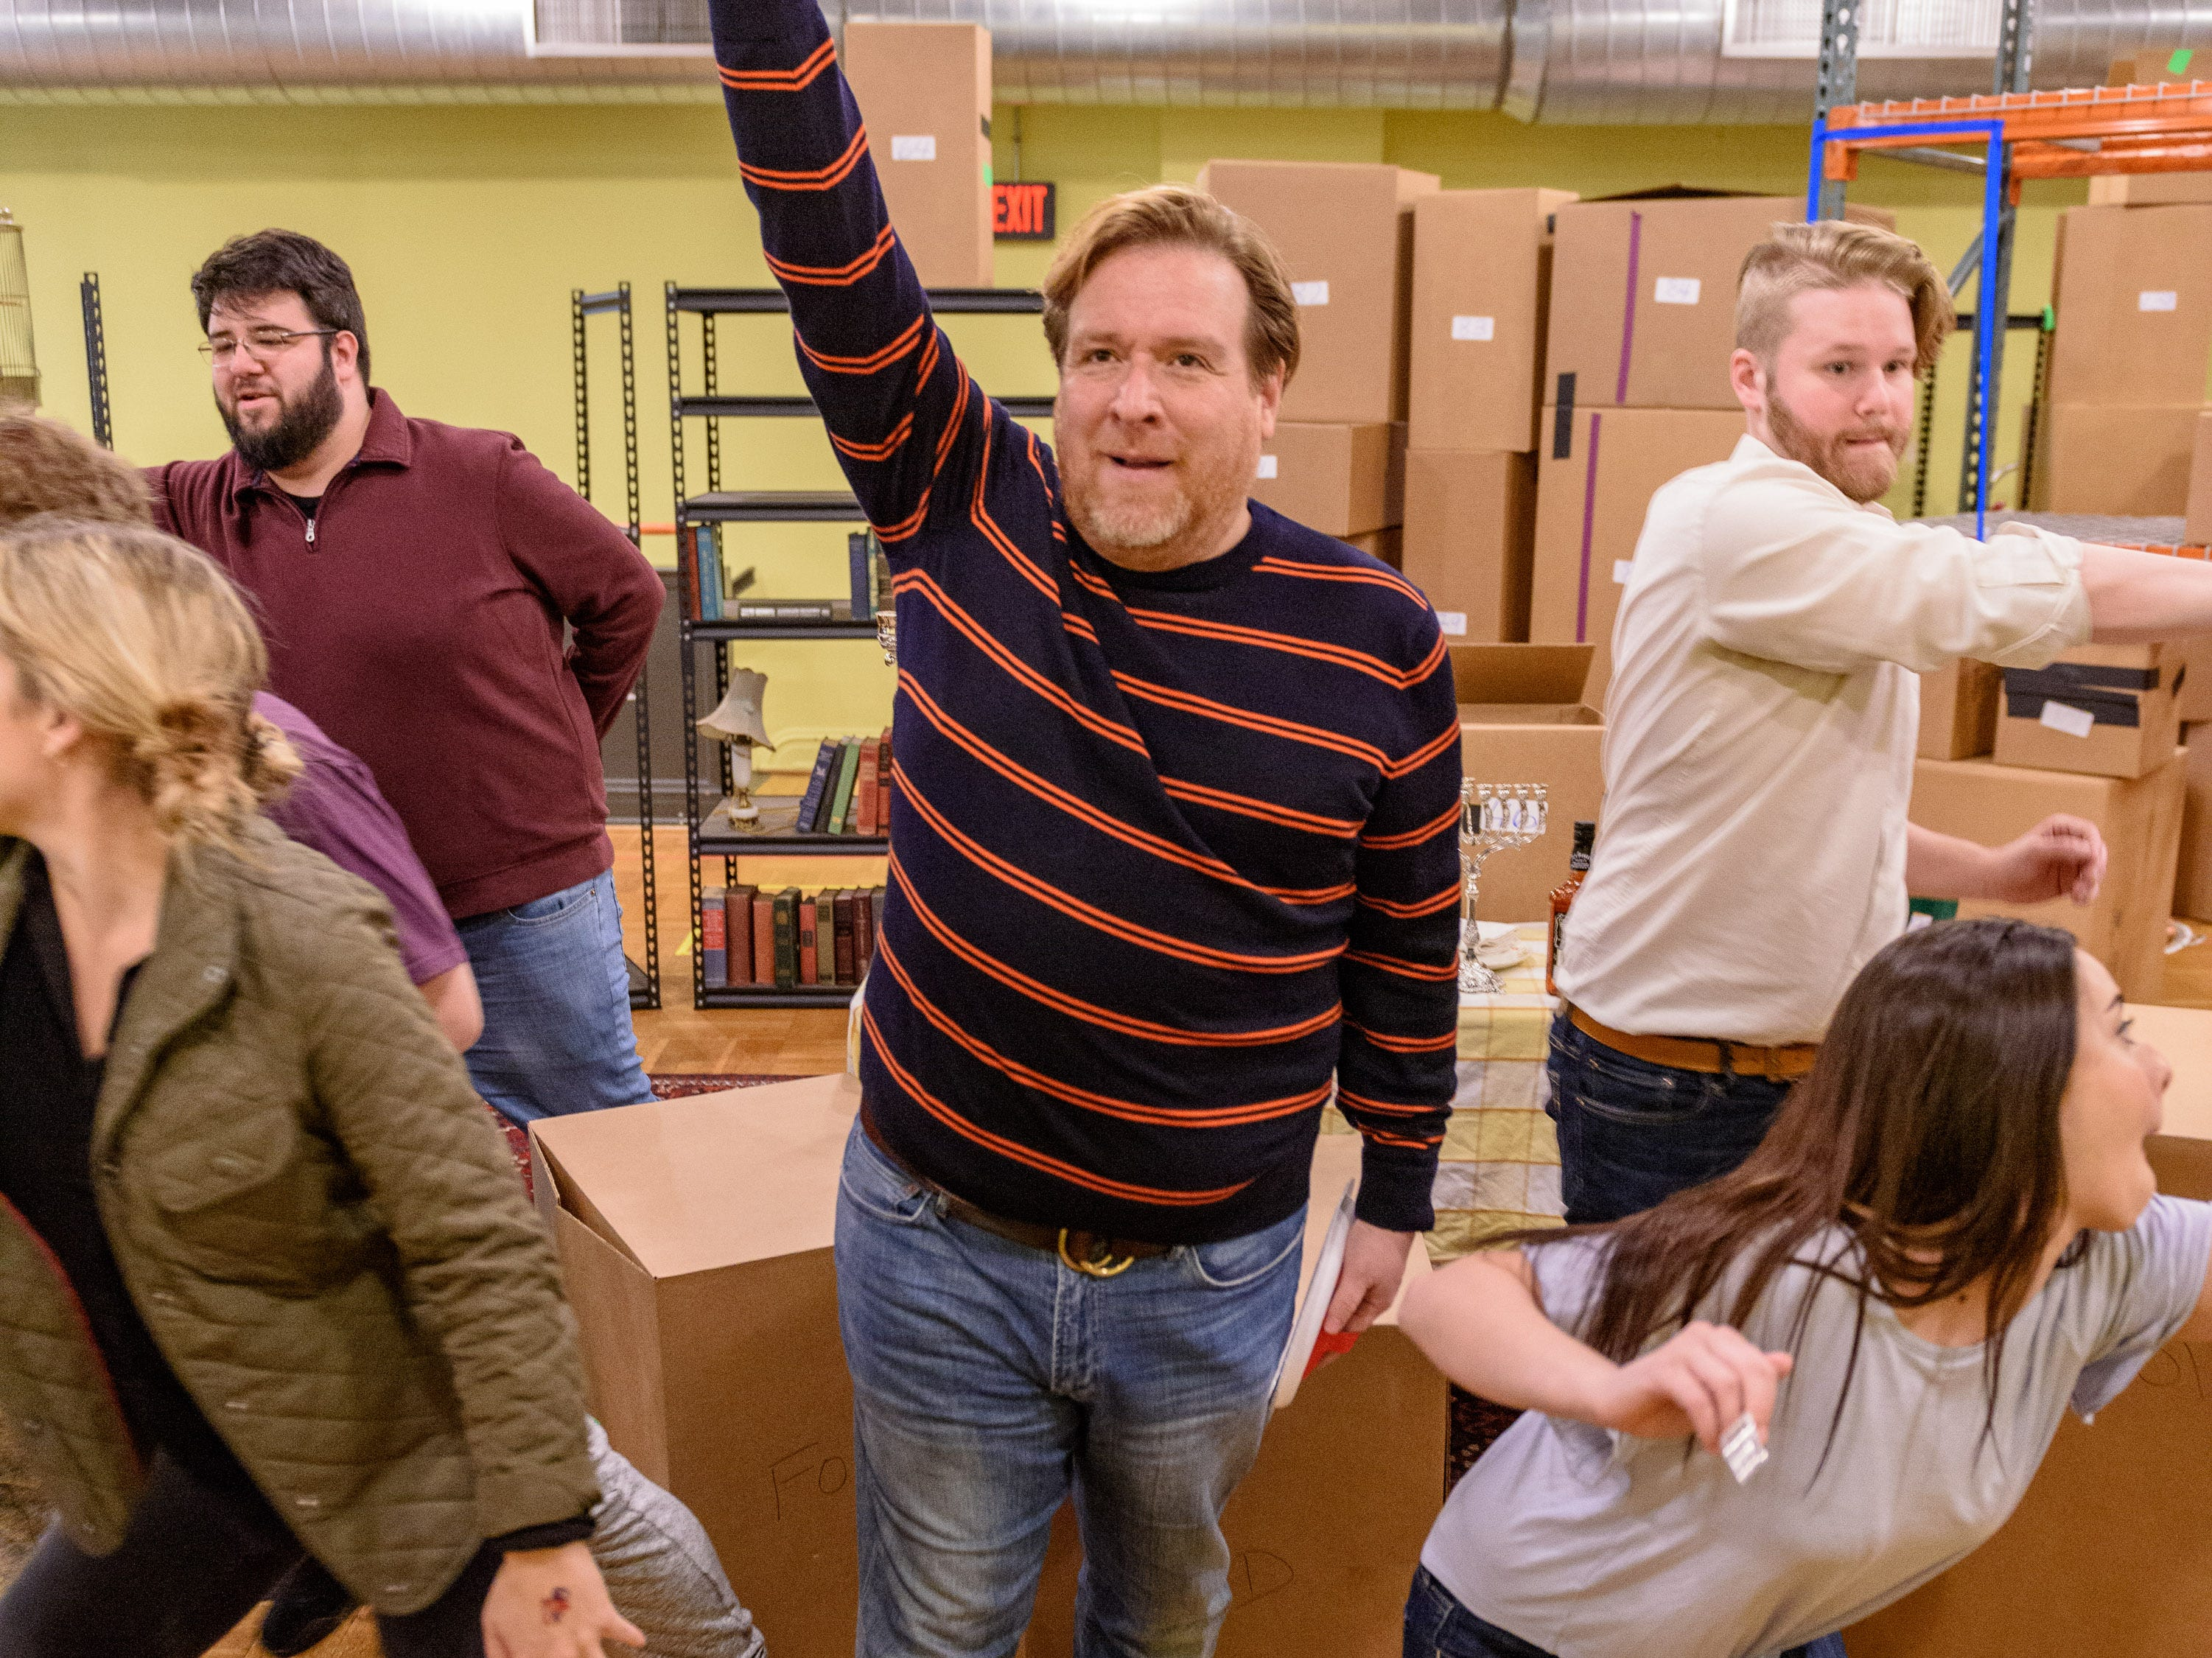 "Actors practice the Hanukkah Party scene in Act 2 as Kentucky Opera works on their production of ""Enemies, A Love Story,"" in their rehearsal space at the Brown Theater. Rabbi Lampert, played by Levi Hernandez, center, is surrounded by party guests, from left, Reilly Nelson as Leah, Tyler Carnes, Dathan Hooper, Adrian Sanchez, Thomas J. Capobianco as Nissen, Murrella Parton as Sheva Haddas, Isaac Pendley and Gabriella Galletti. Oct. 27, 2018"